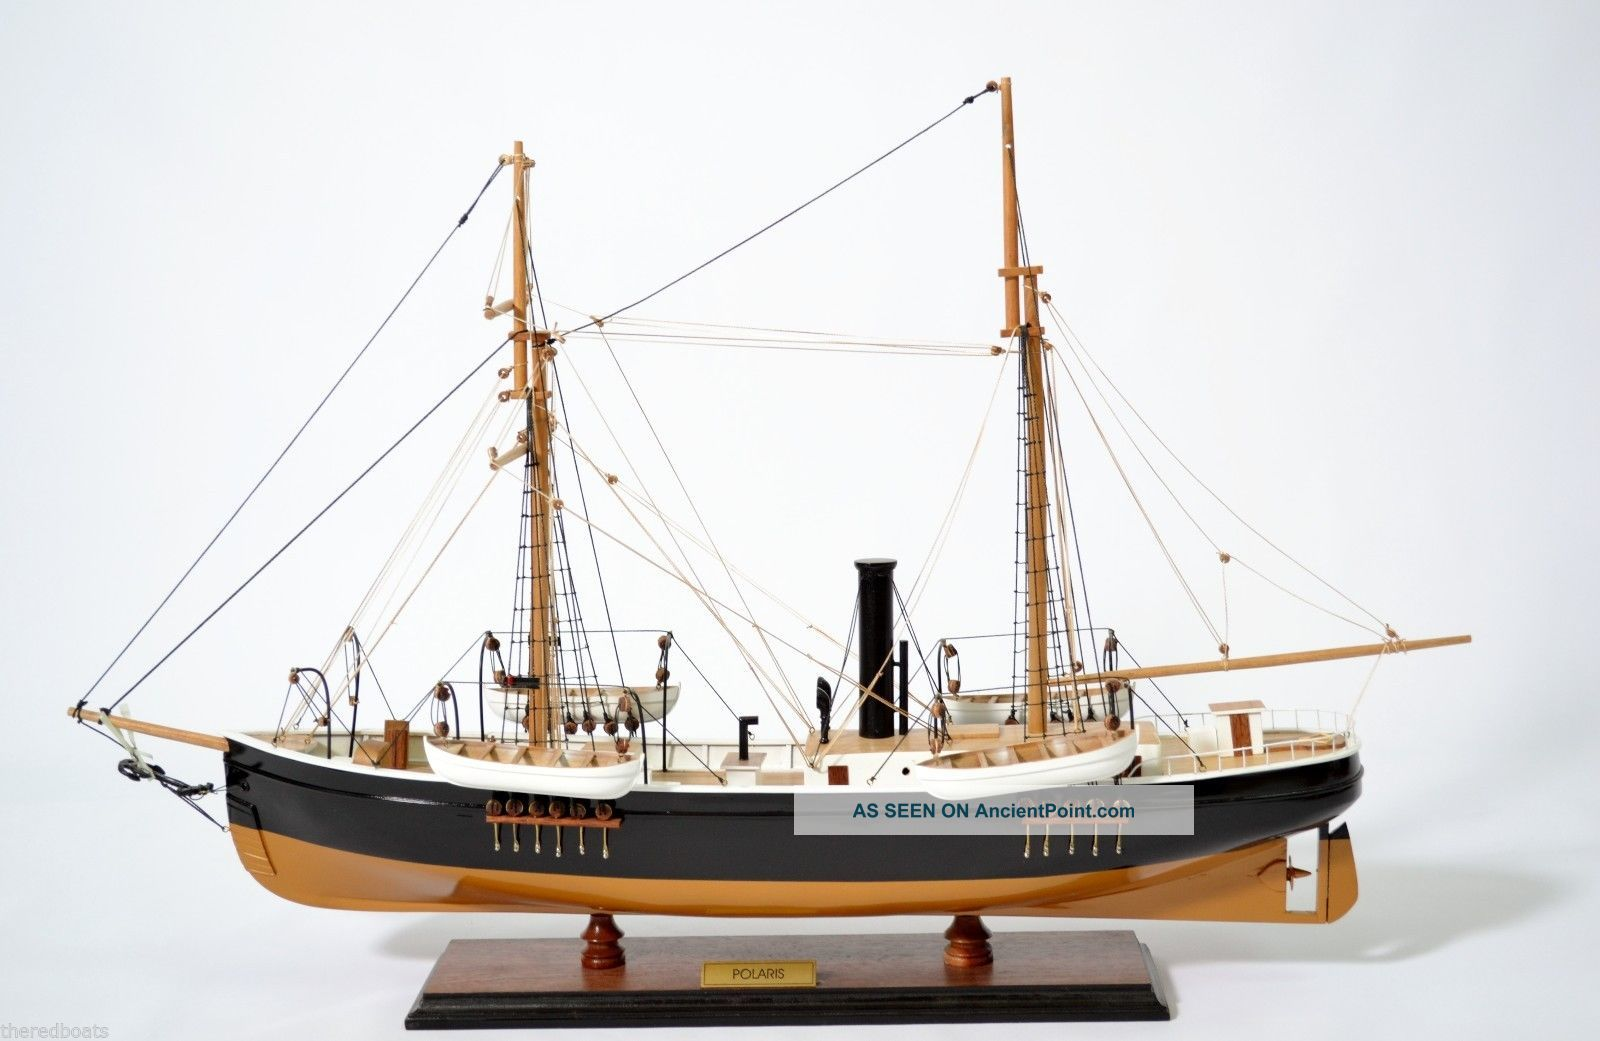 Polaris Expedition To The North Pole Tall Ship - Handmade Wooden Tall Ship Model See more American Polaris Tall Ship North Pole Assemble... photo